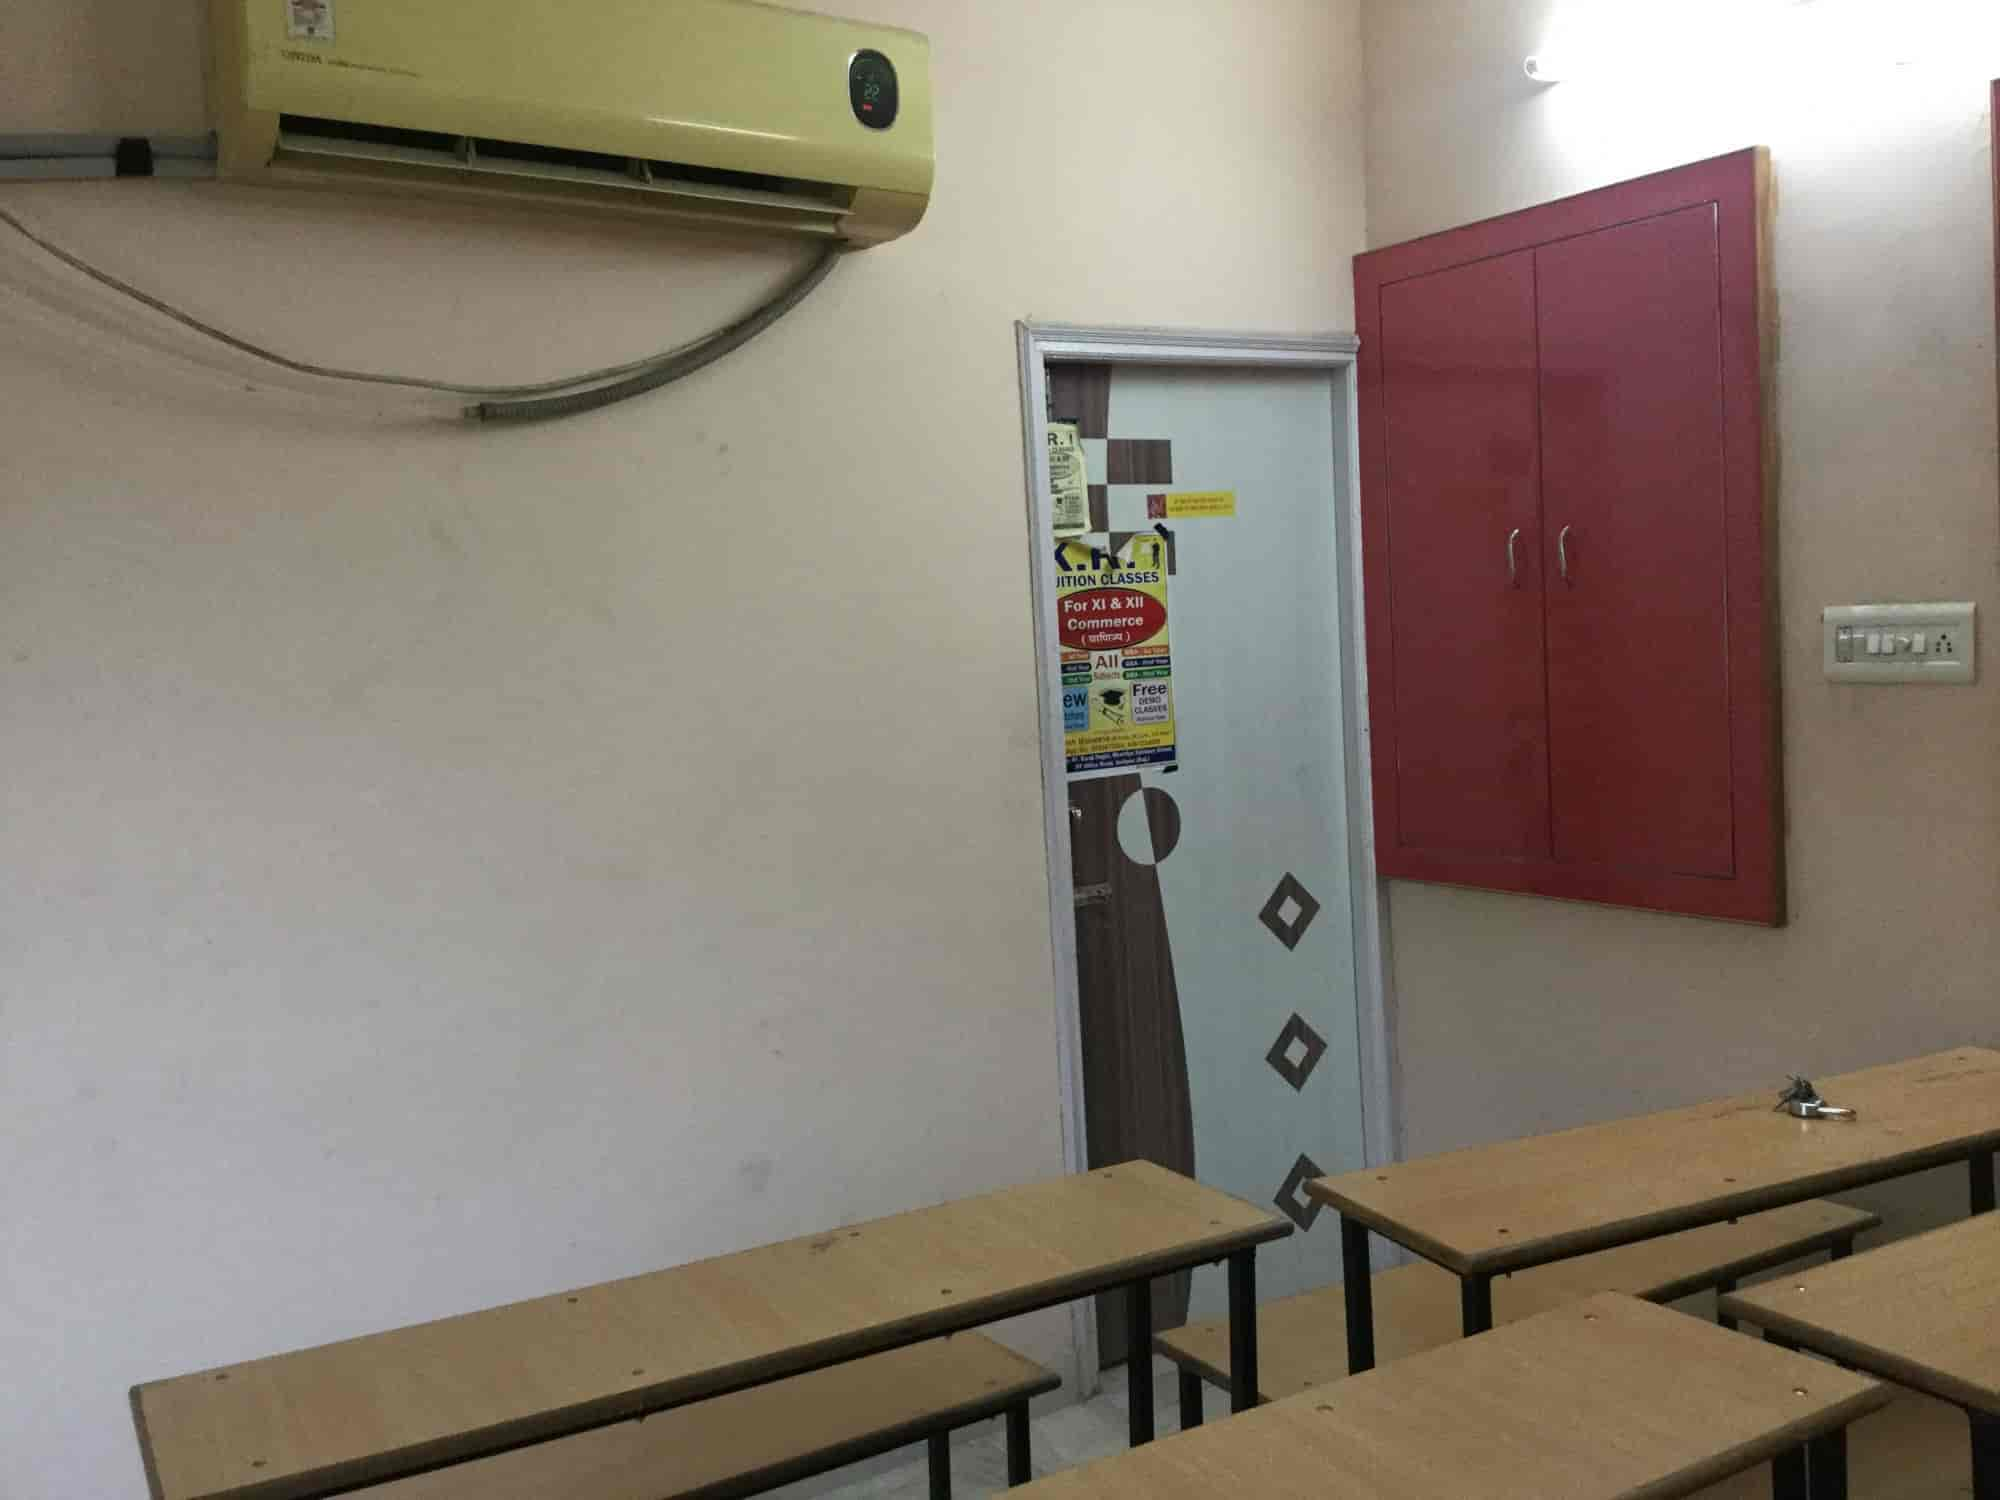 K R Tuition Classes (Closed Down) in Chopasni Housing Board